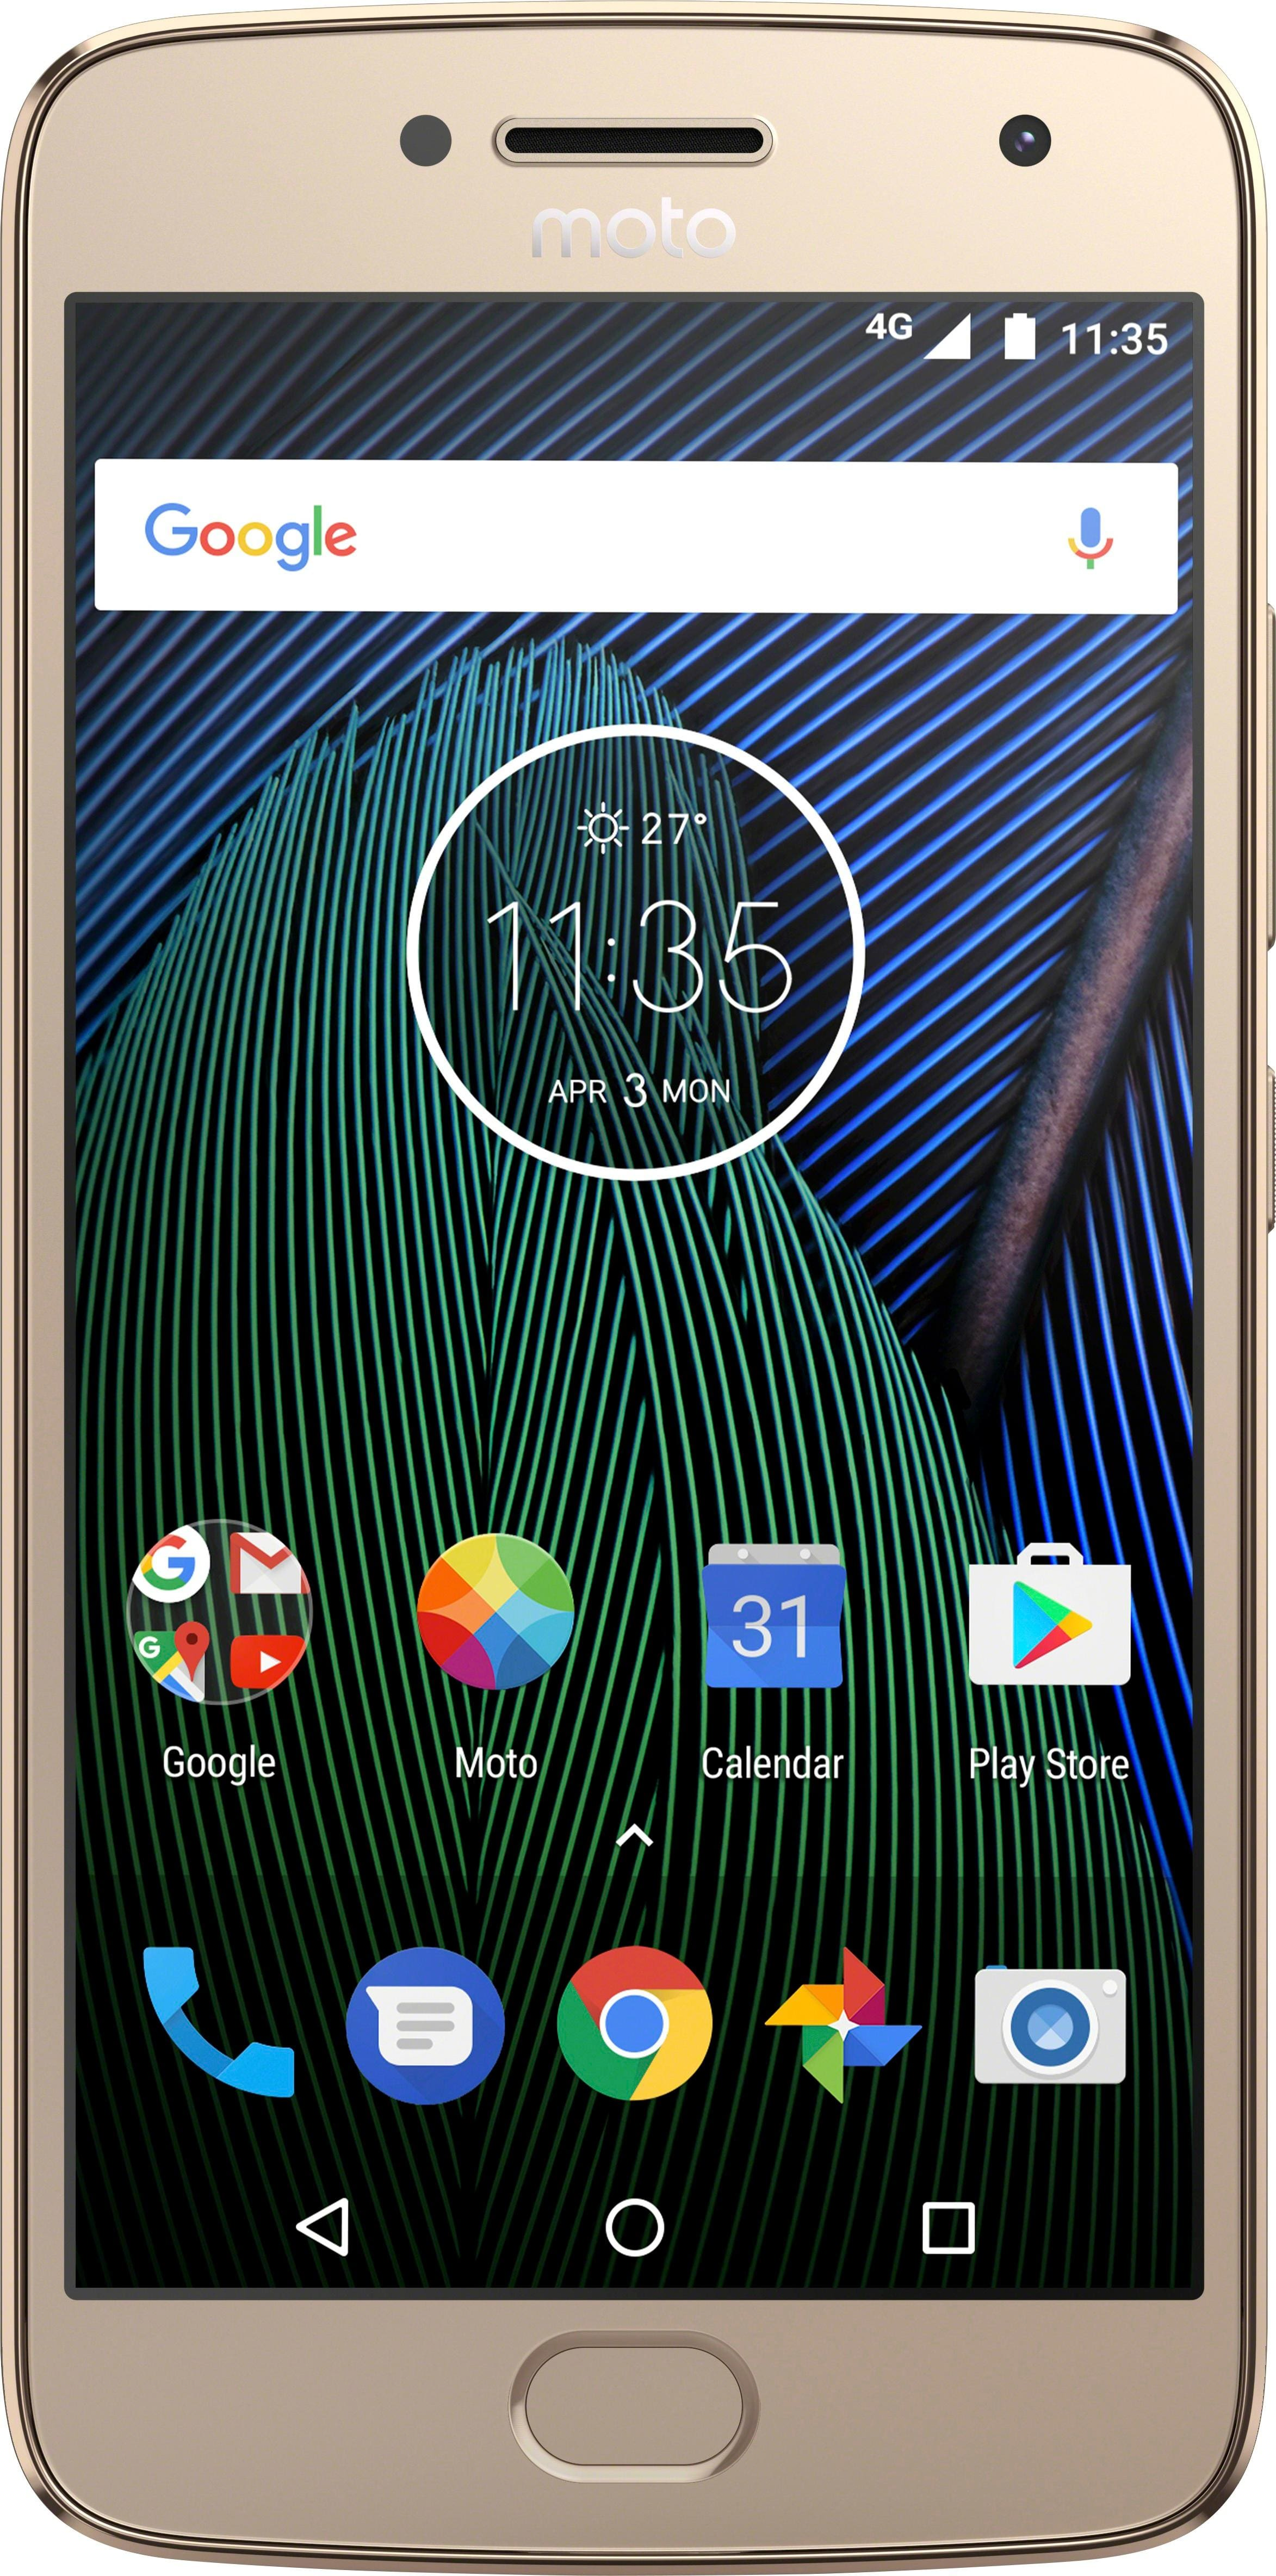 Expired. (Glitch in BB website) Motorola - Moto G Plus (5th Gen) 4G LTE with 64GB Memory Cell Phone (Unlocked) - Fine Gold or Lunar Gray $175 at BestBuy